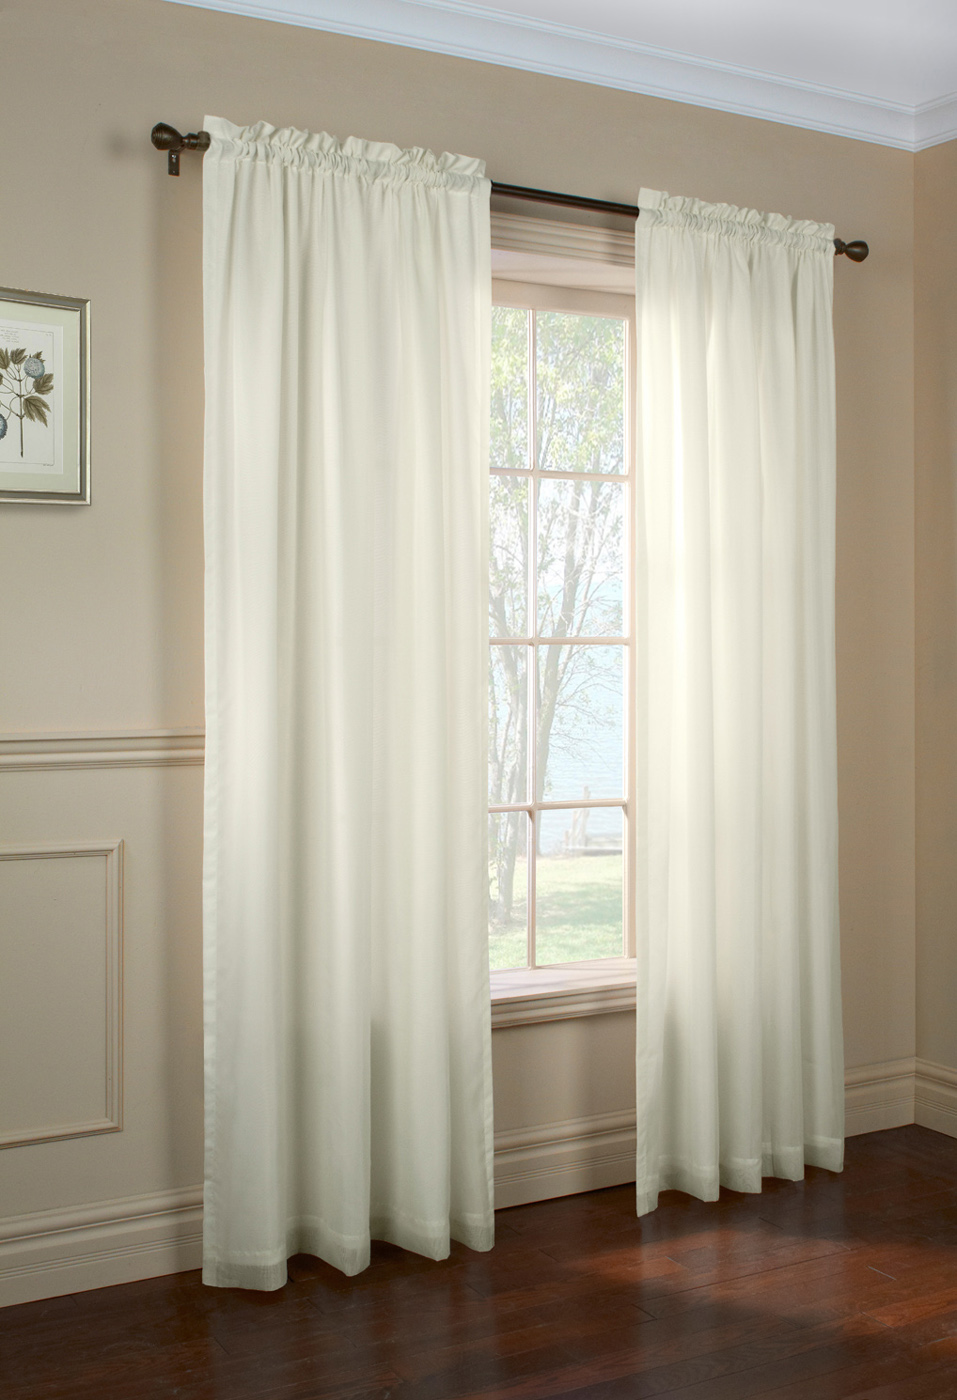 Sheer Window Curtains I 1 2 TheCurtainShop